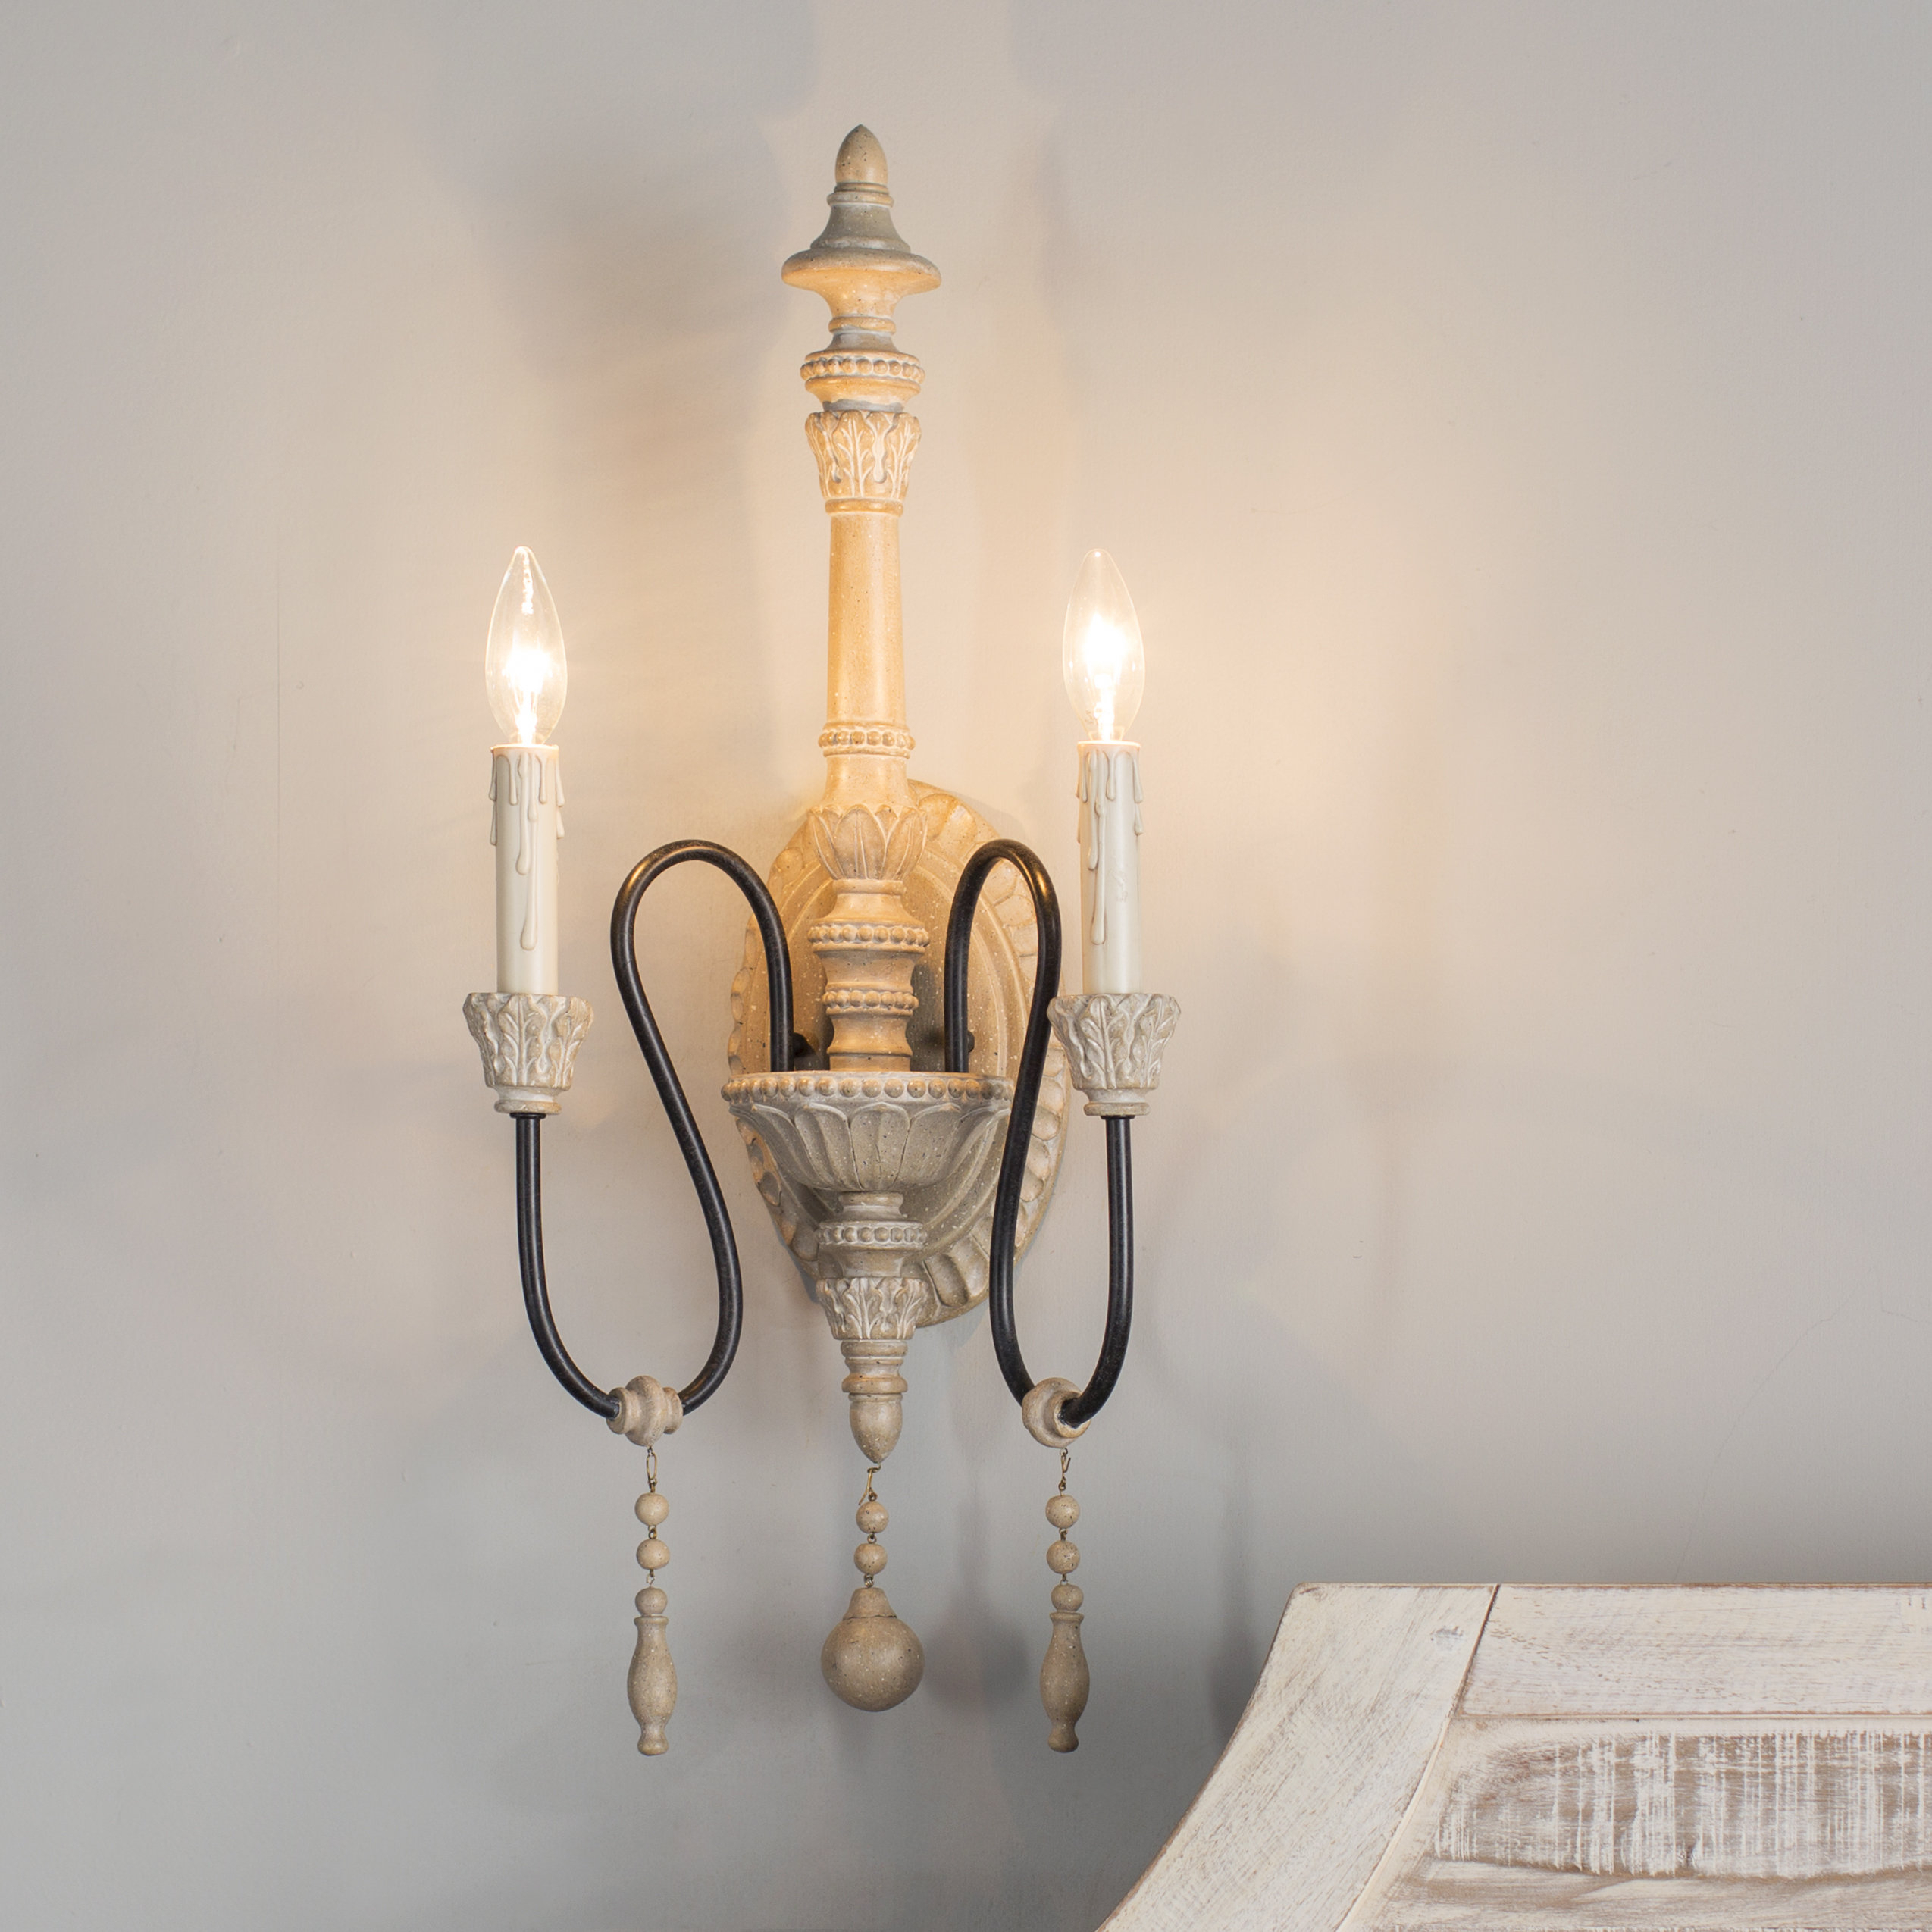 Corneau 2-Light Candle Wall Light with regard to Corneau 5-Light Chandeliers (Image 14 of 30)